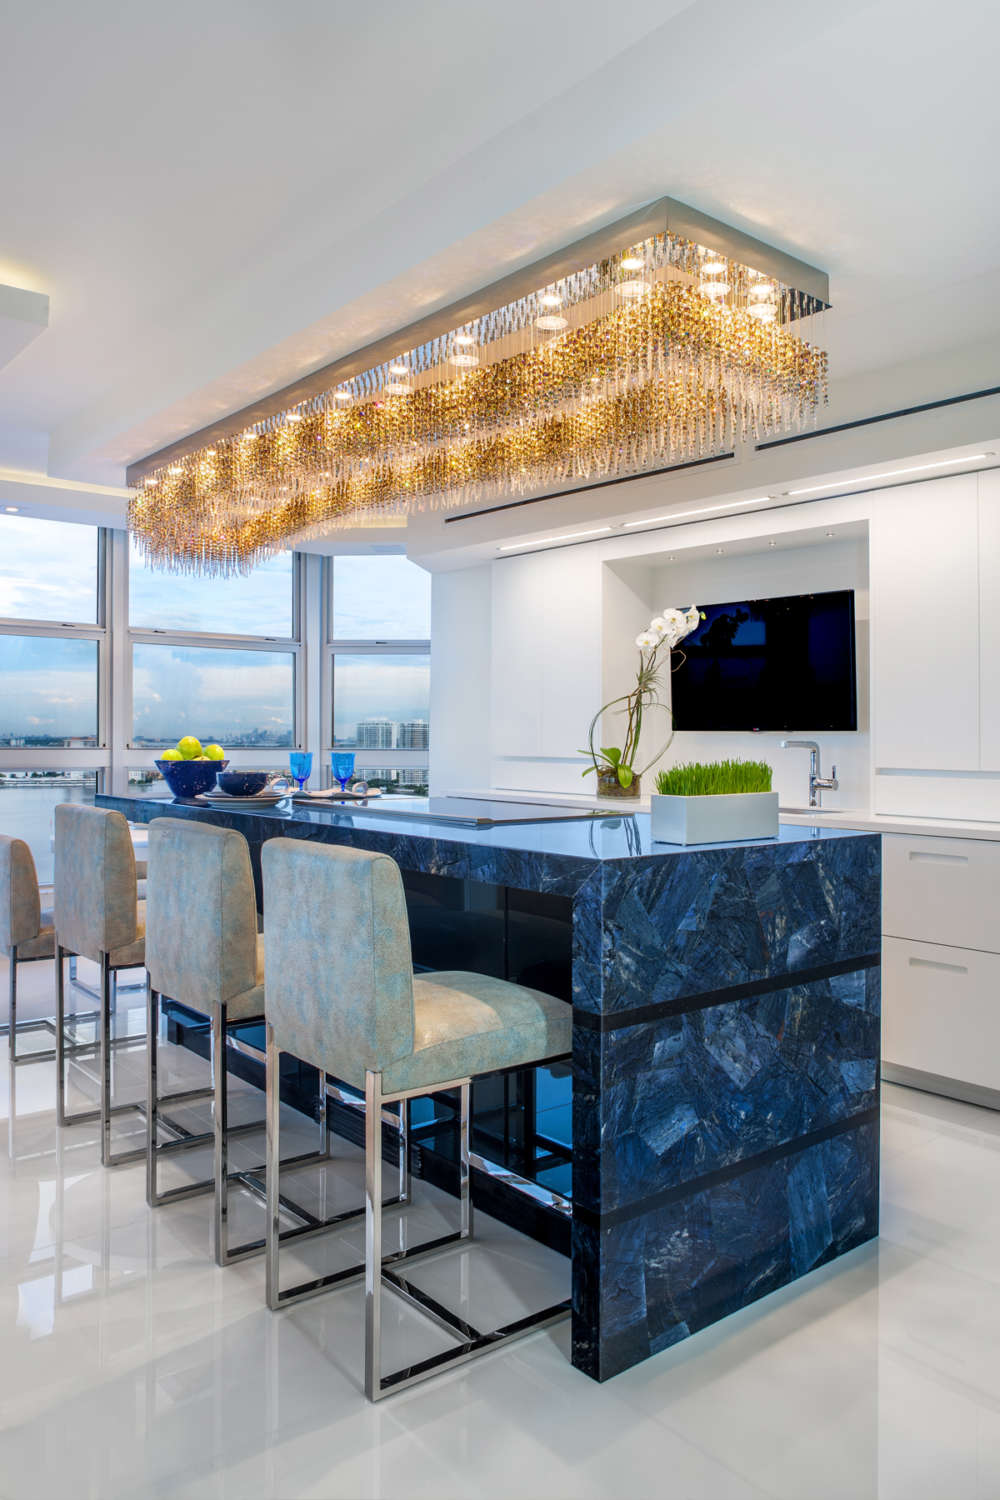 The island of this Florida penthouse kitchen features a Galaxy glass island with seating, a modern rectangular statement chandelier, and semi gloss white fully custom flat panel frameless cabinets by Artcraft. Design by Peter Bittner of Bilotta Kitchens.